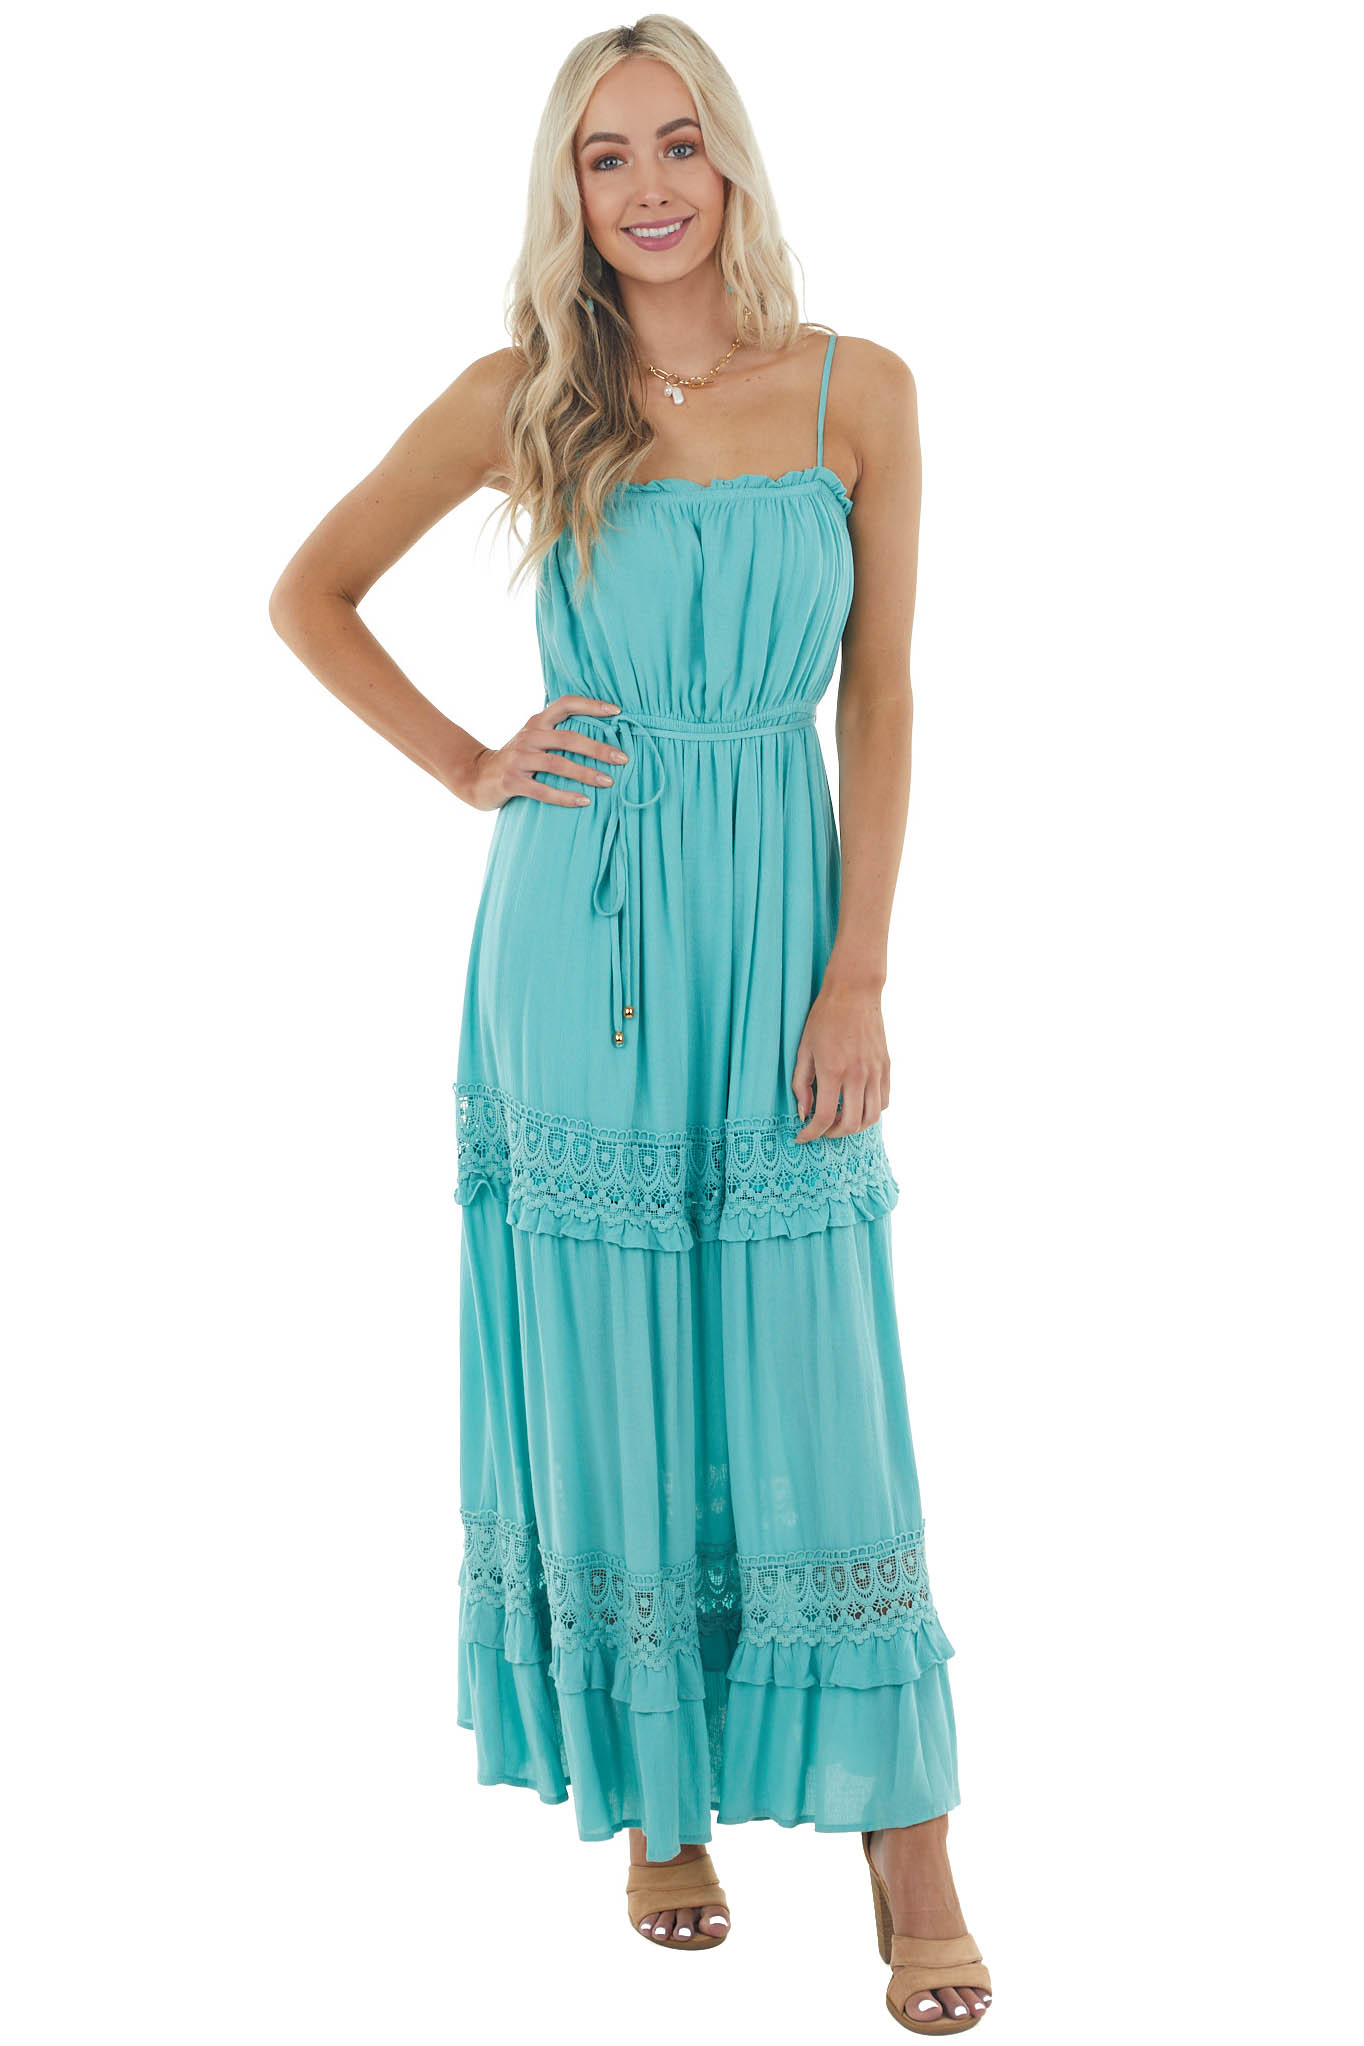 Dusty Teal Sleeveless Maxi Dress with Crochet Lace Detail